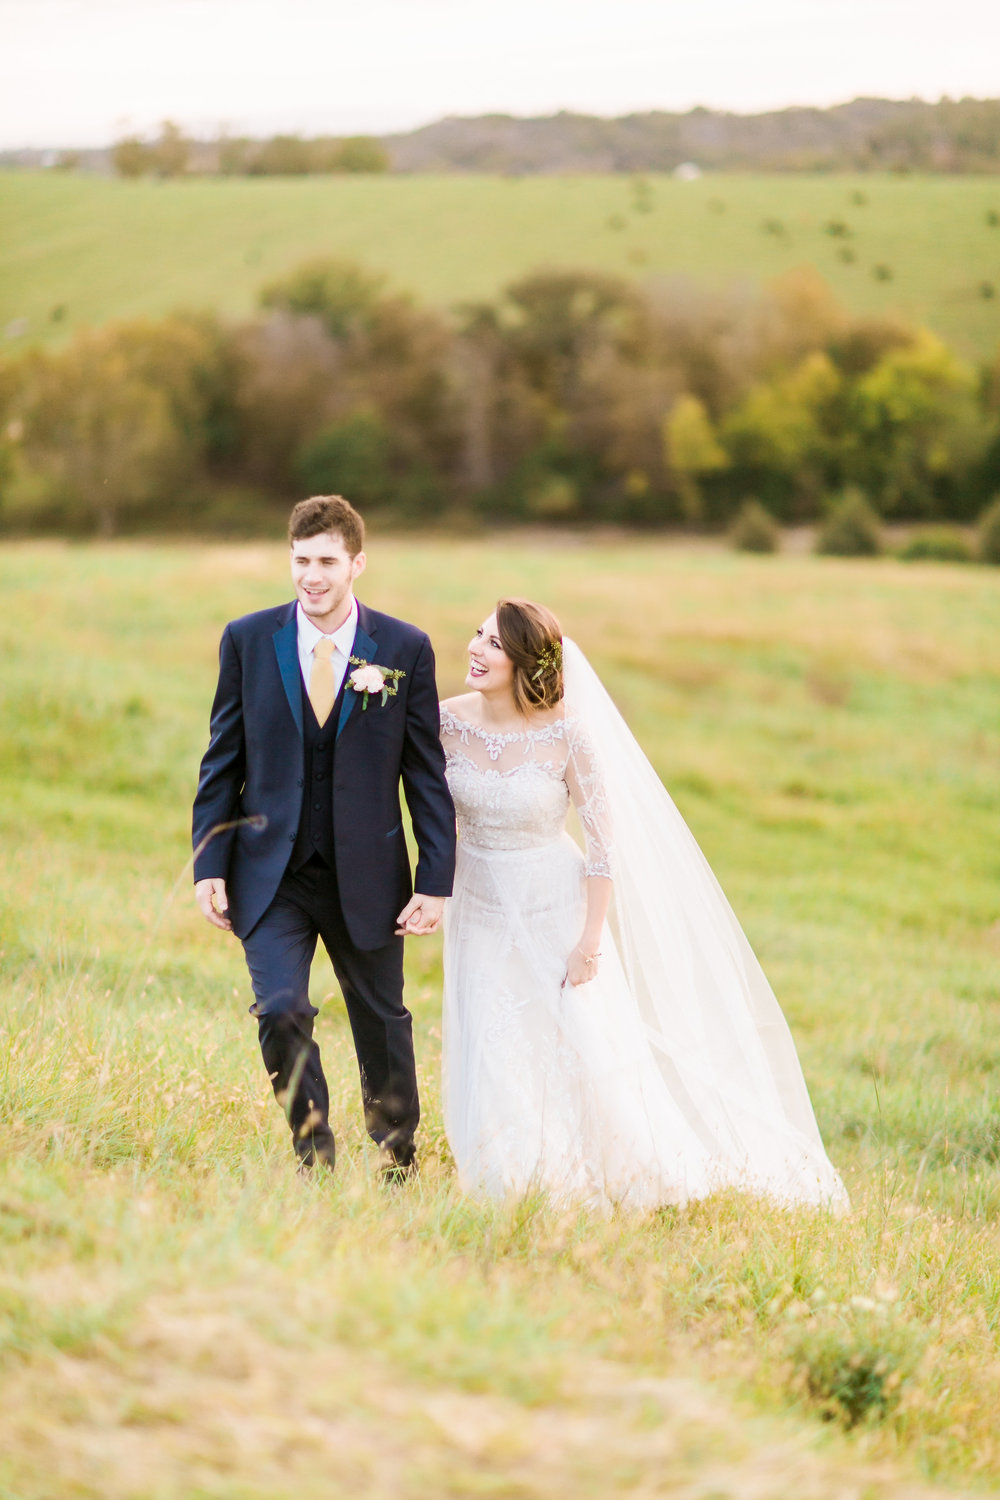 MissouriRusticWedding_StLouisWeddingPhotographer_AliciaDan_CatherineRhodesPhotography-4228-Edit.jpg